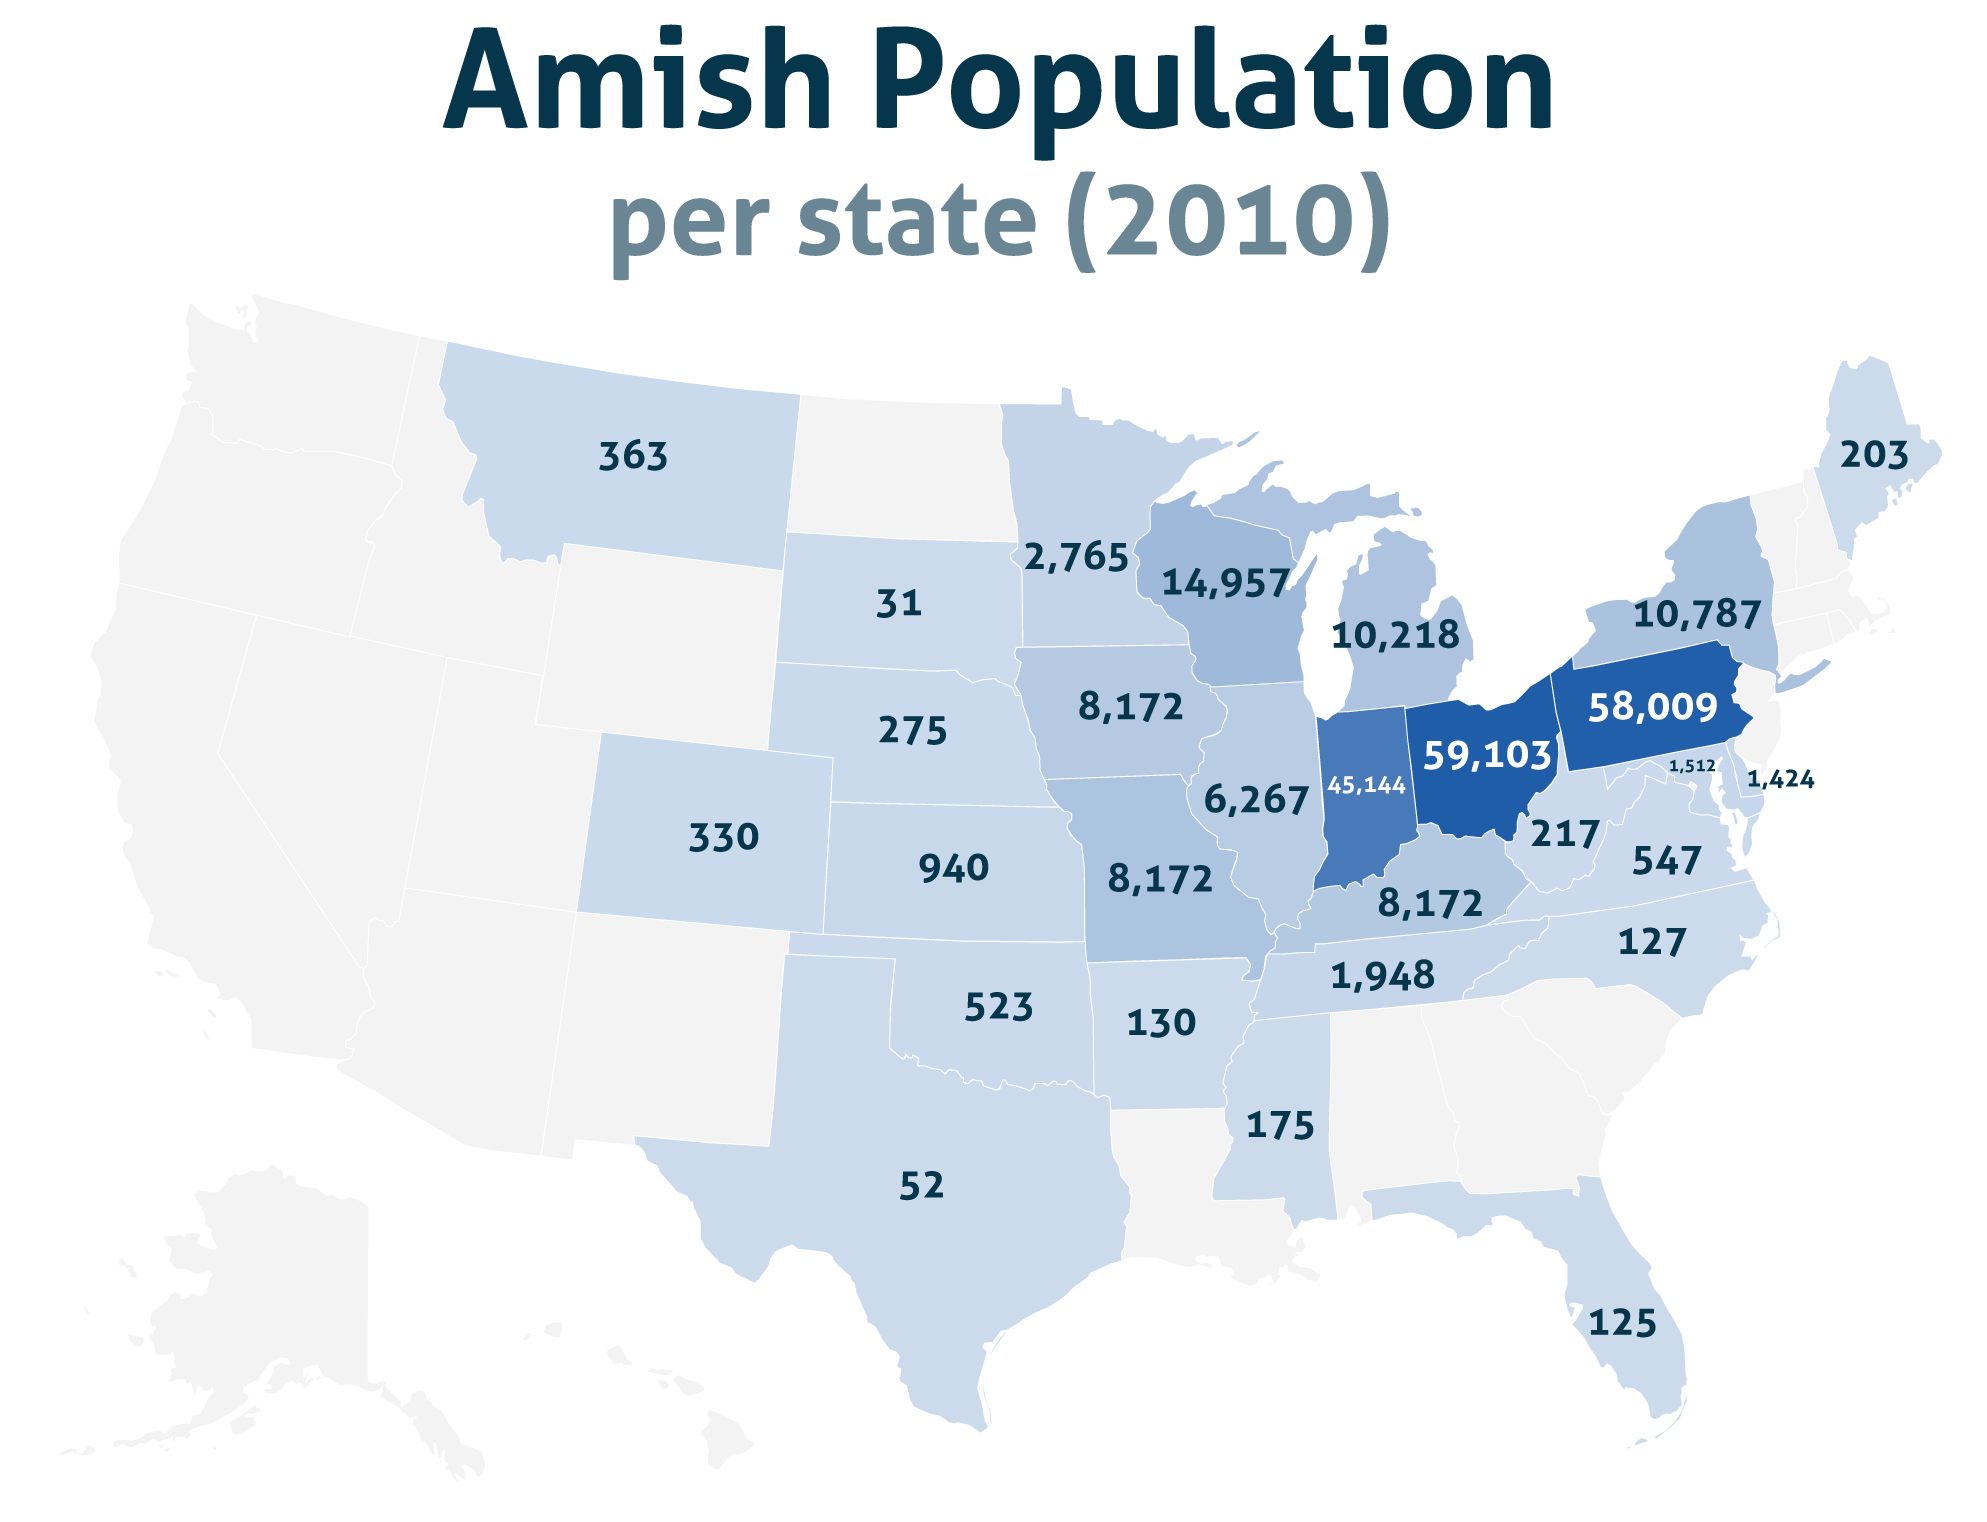 Amish Communities In Usa Map.Amish Population Per State 2010 Human Geography Amish Map